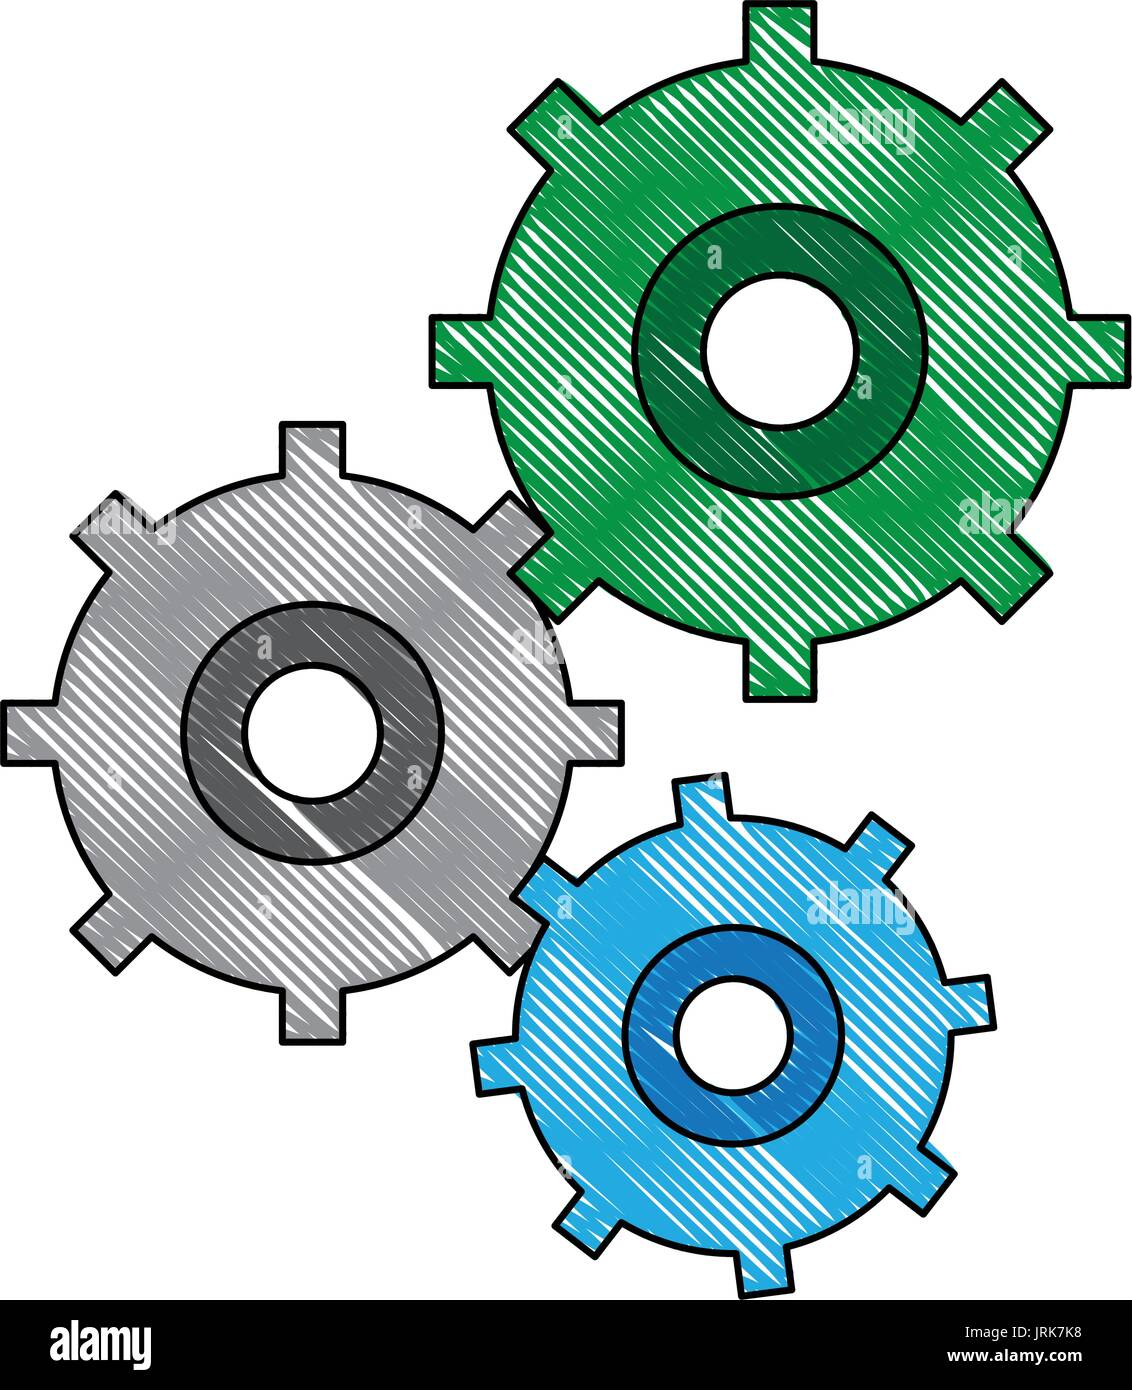 gears symbol concept of motion and mechanics connection and operation - Stock Image